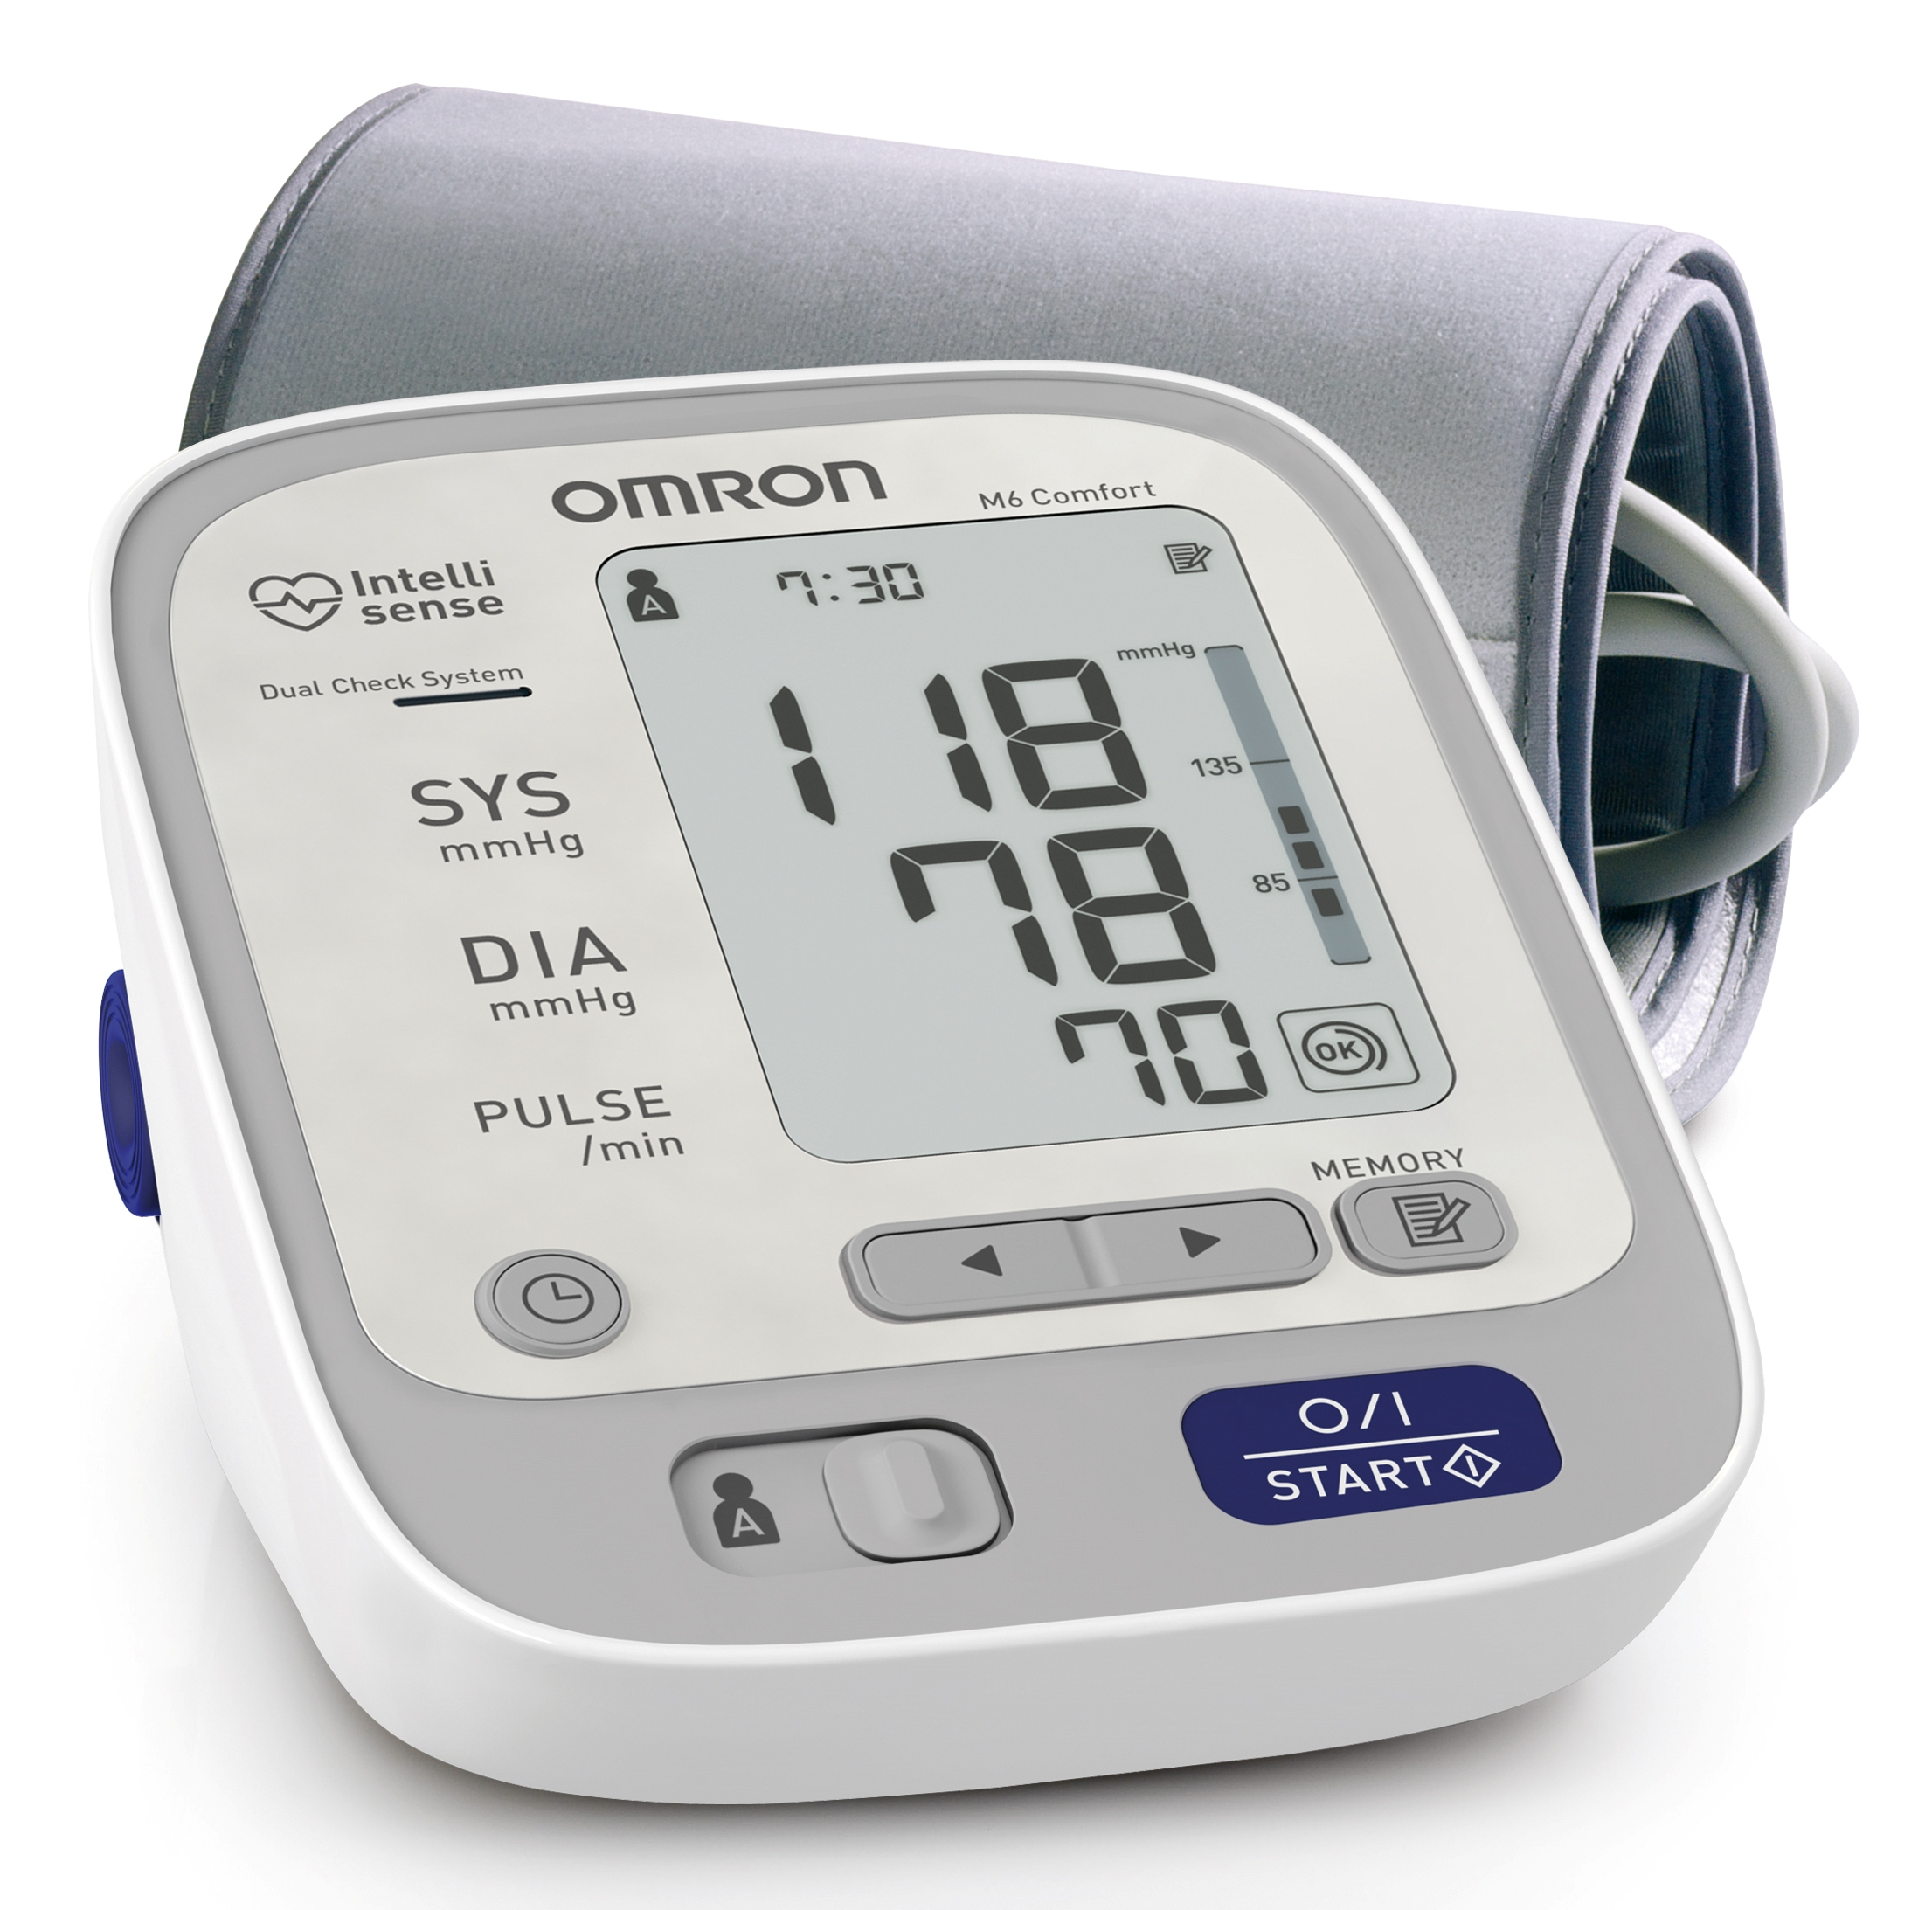 upper arm digital blood pressure monitor omron m6 comfort for. Black Bedroom Furniture Sets. Home Design Ideas